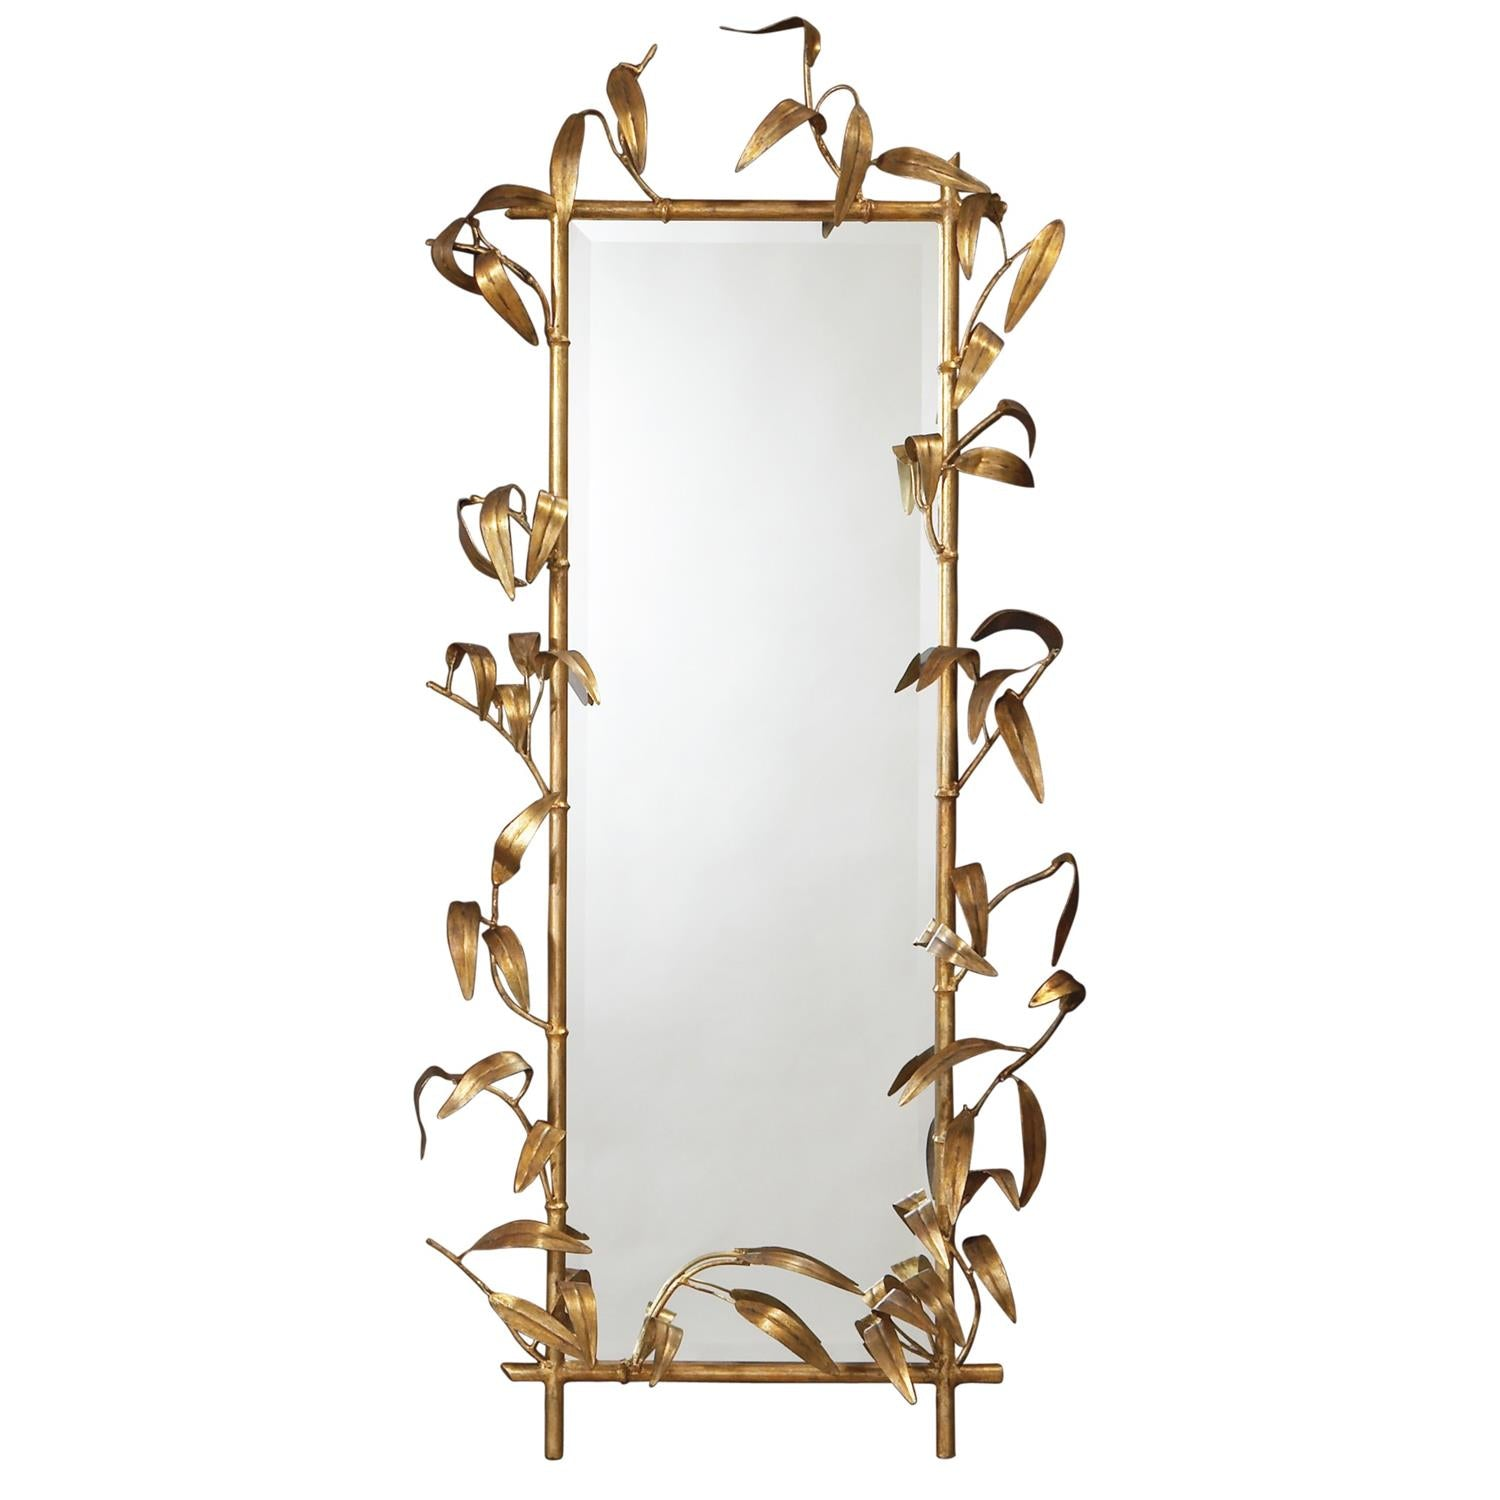 Bamboo Mirror with Gold Finish